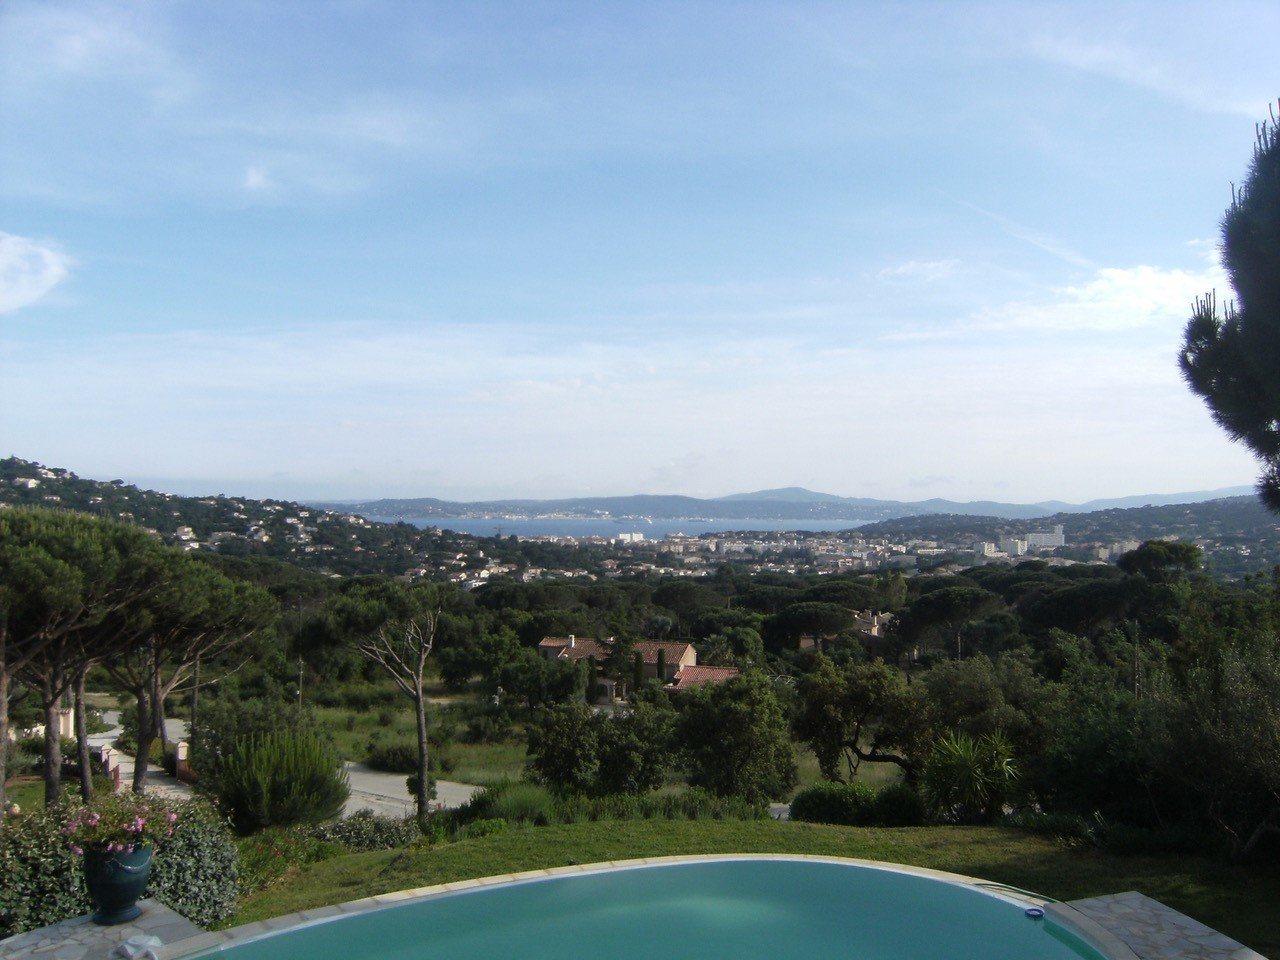 Villa with panoramic view over the gulf of Saint-Tropez